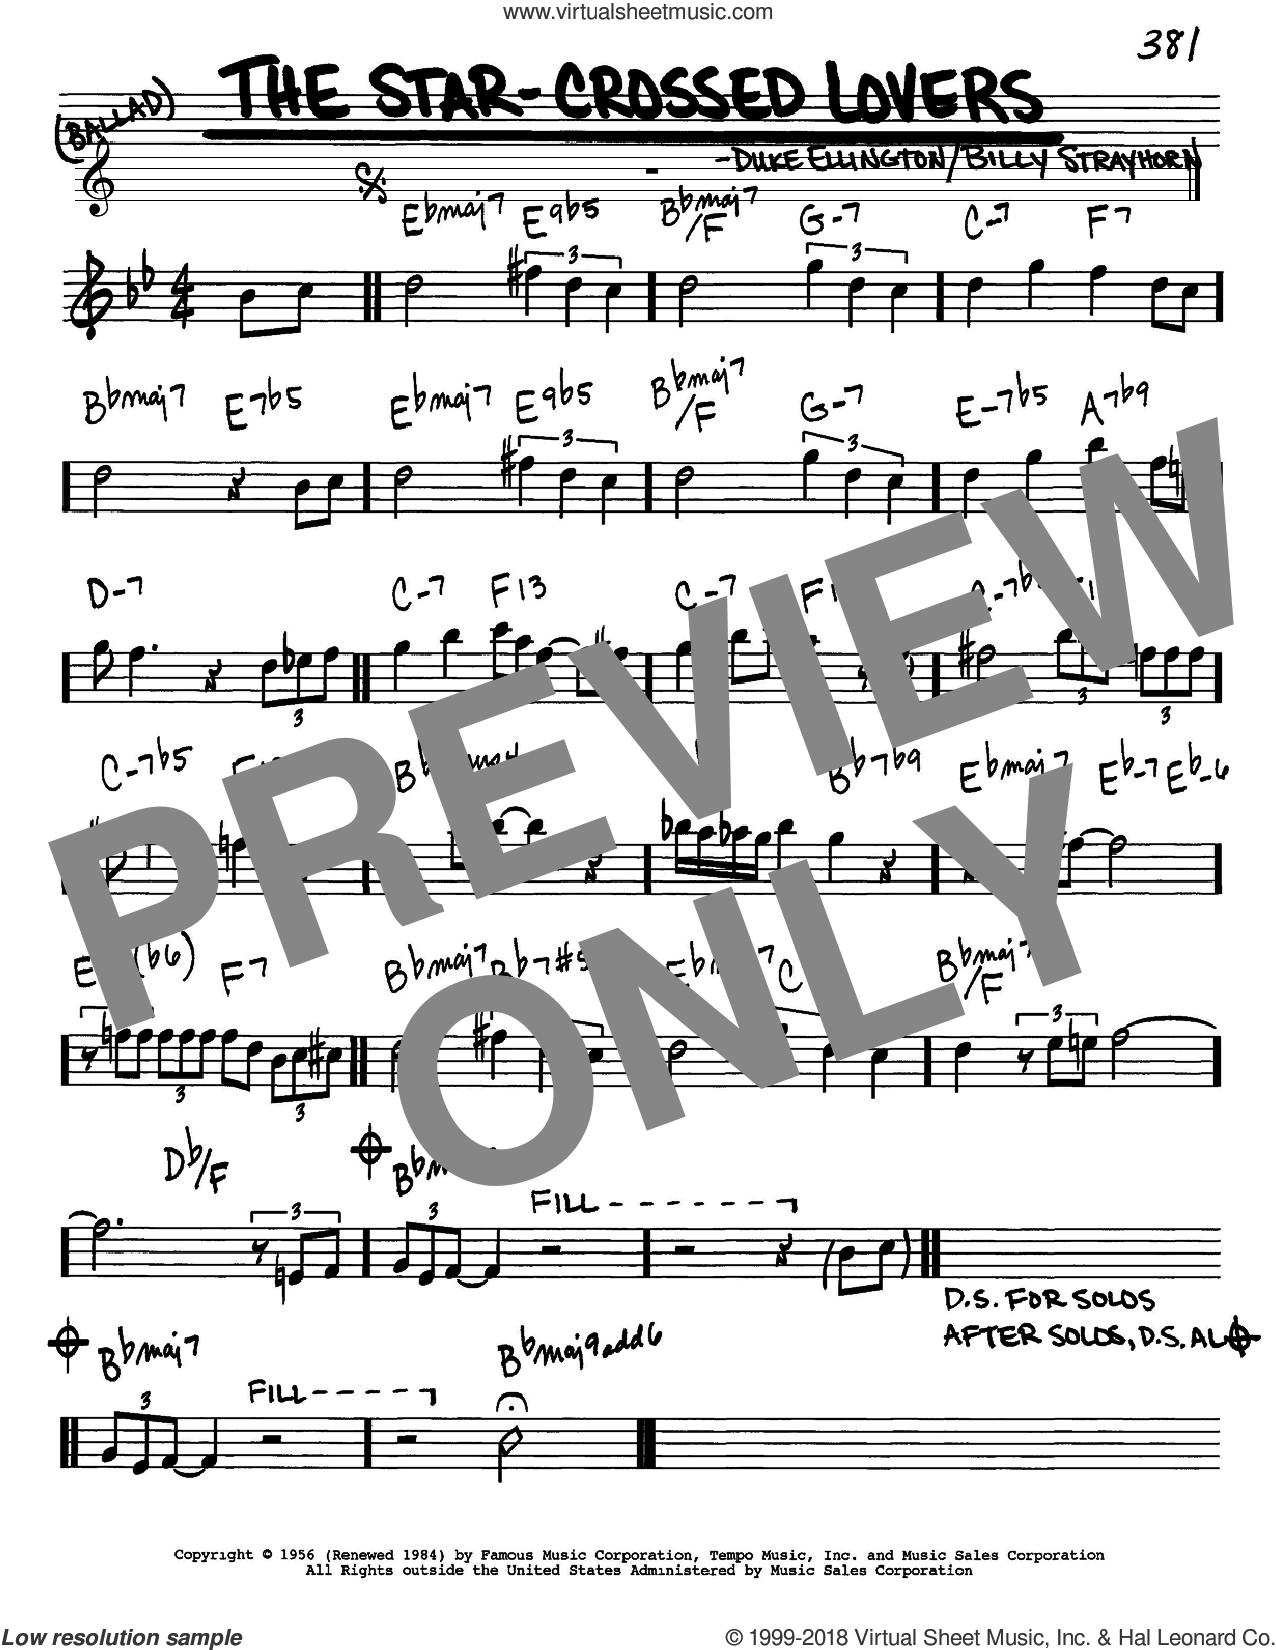 The Star-Crossed Lovers sheet music for voice and other instruments (in Eb) by Duke Ellington and Billy Strayhorn, intermediate